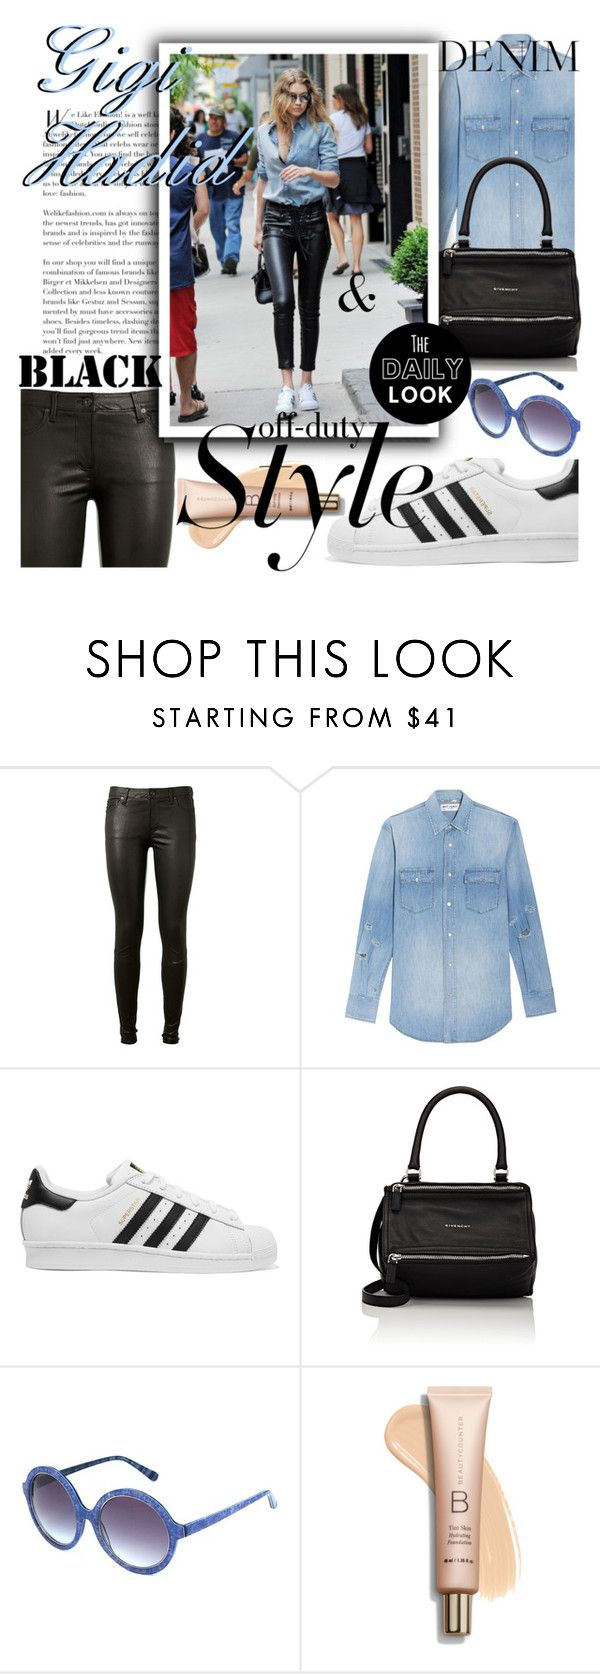 """Gigi Off-Duty Style"" by anin-kutak ❤ liked on Polyvore featuring AG Adriano Goldschmied, Yves Saint Laurent, adidas Originals, Givenchy, Heidi London and offduty"